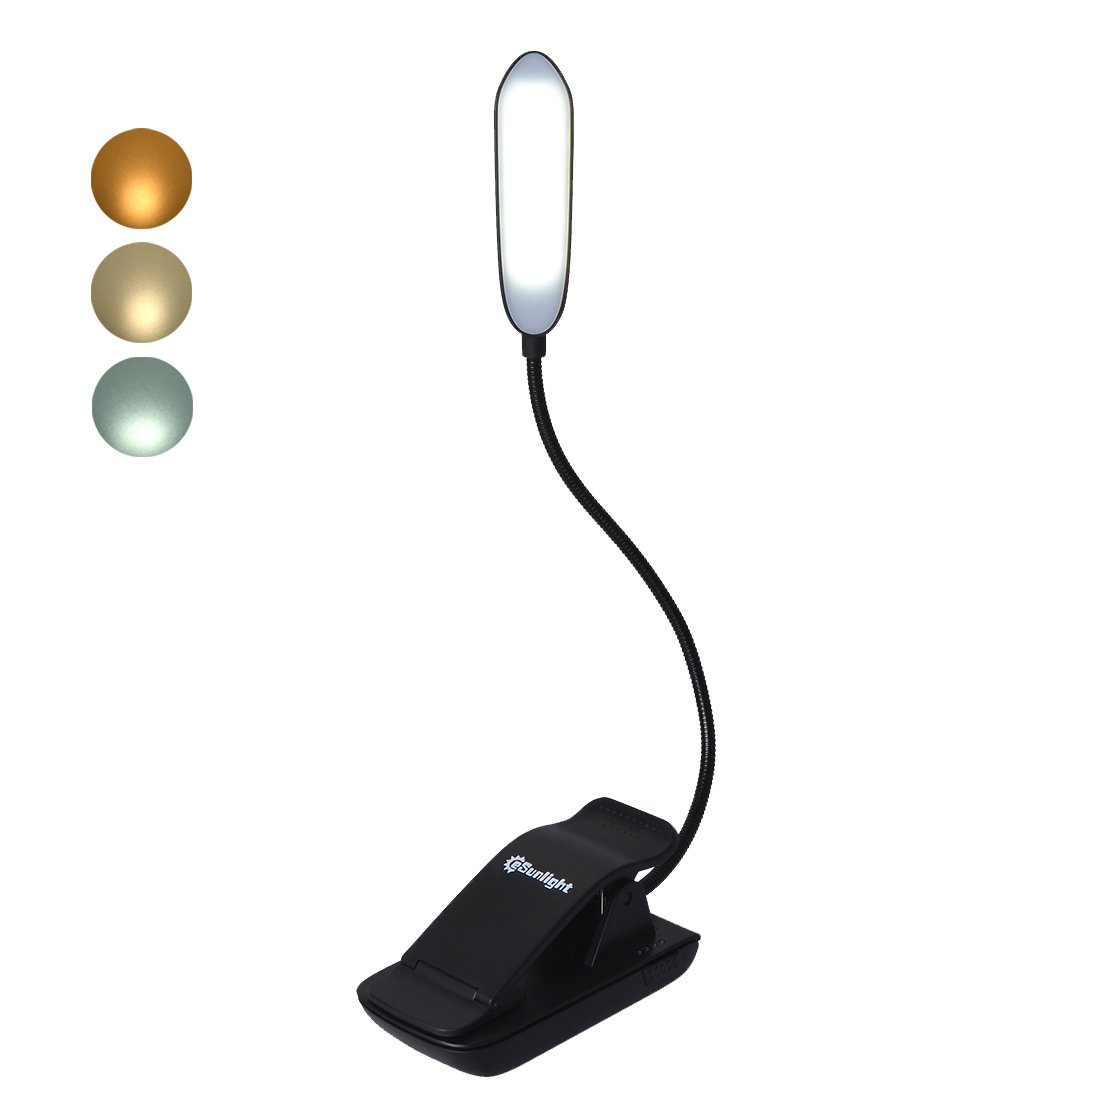 CeSunlight Rechargeable Book Light, Clip on Reading Light, 3000K-6500K Adjustable Color Temperature, up to 33 Hours of Continuous Lighting Time, 9 Illumination Modes, Best Lighting Quality